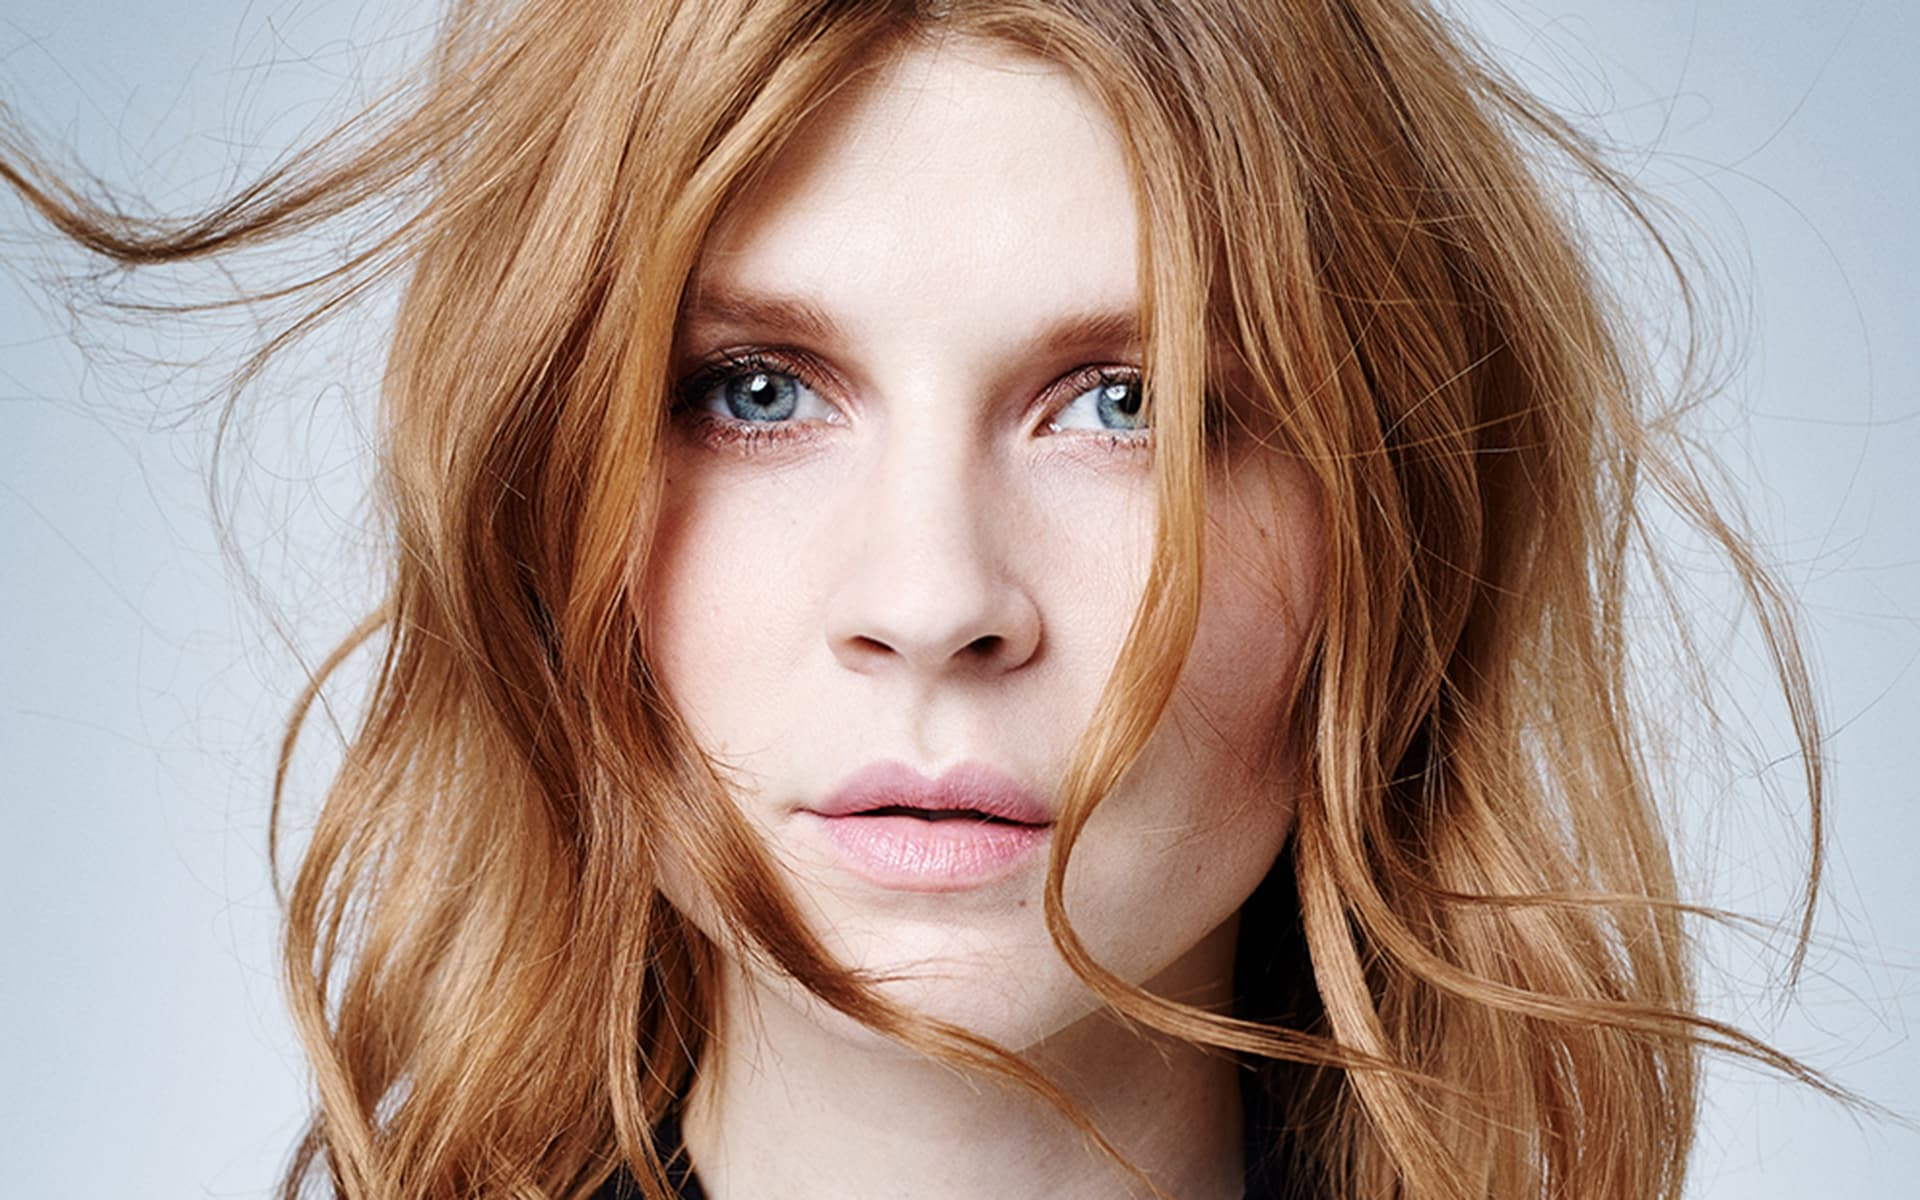 15+ Clemence Poesy wallpapers High Quality Resolution Download